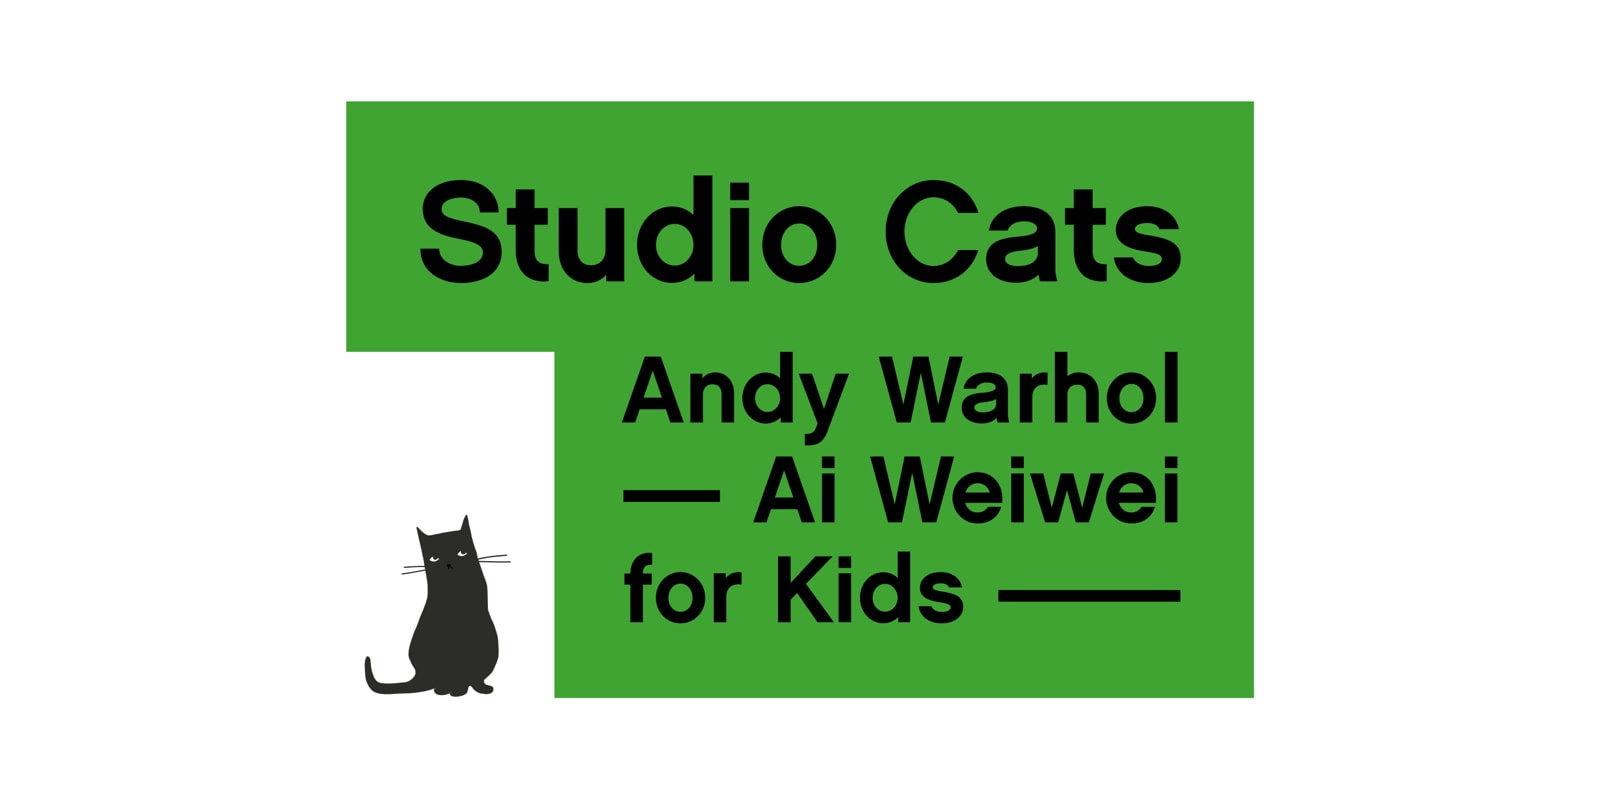 Studio-Cats-Andy-Warhol-Ai-Weiwei-for-Kids